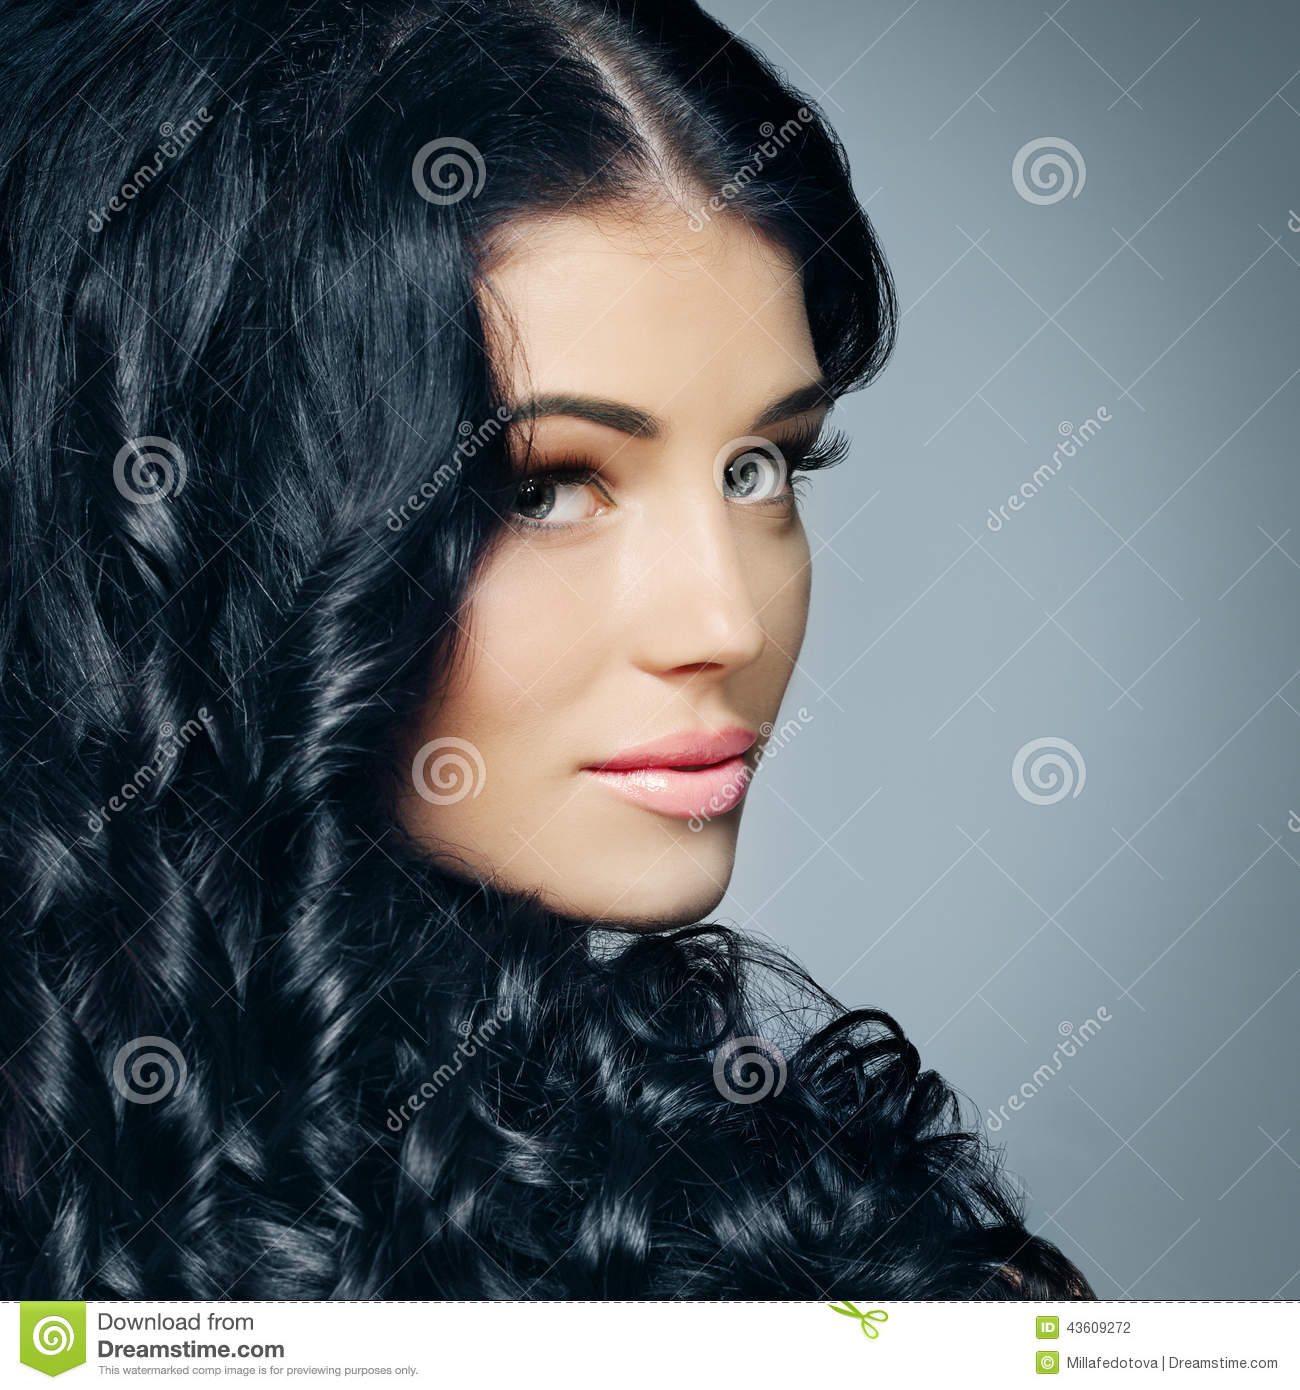 Glamour brunette with beautiful hair and makeup